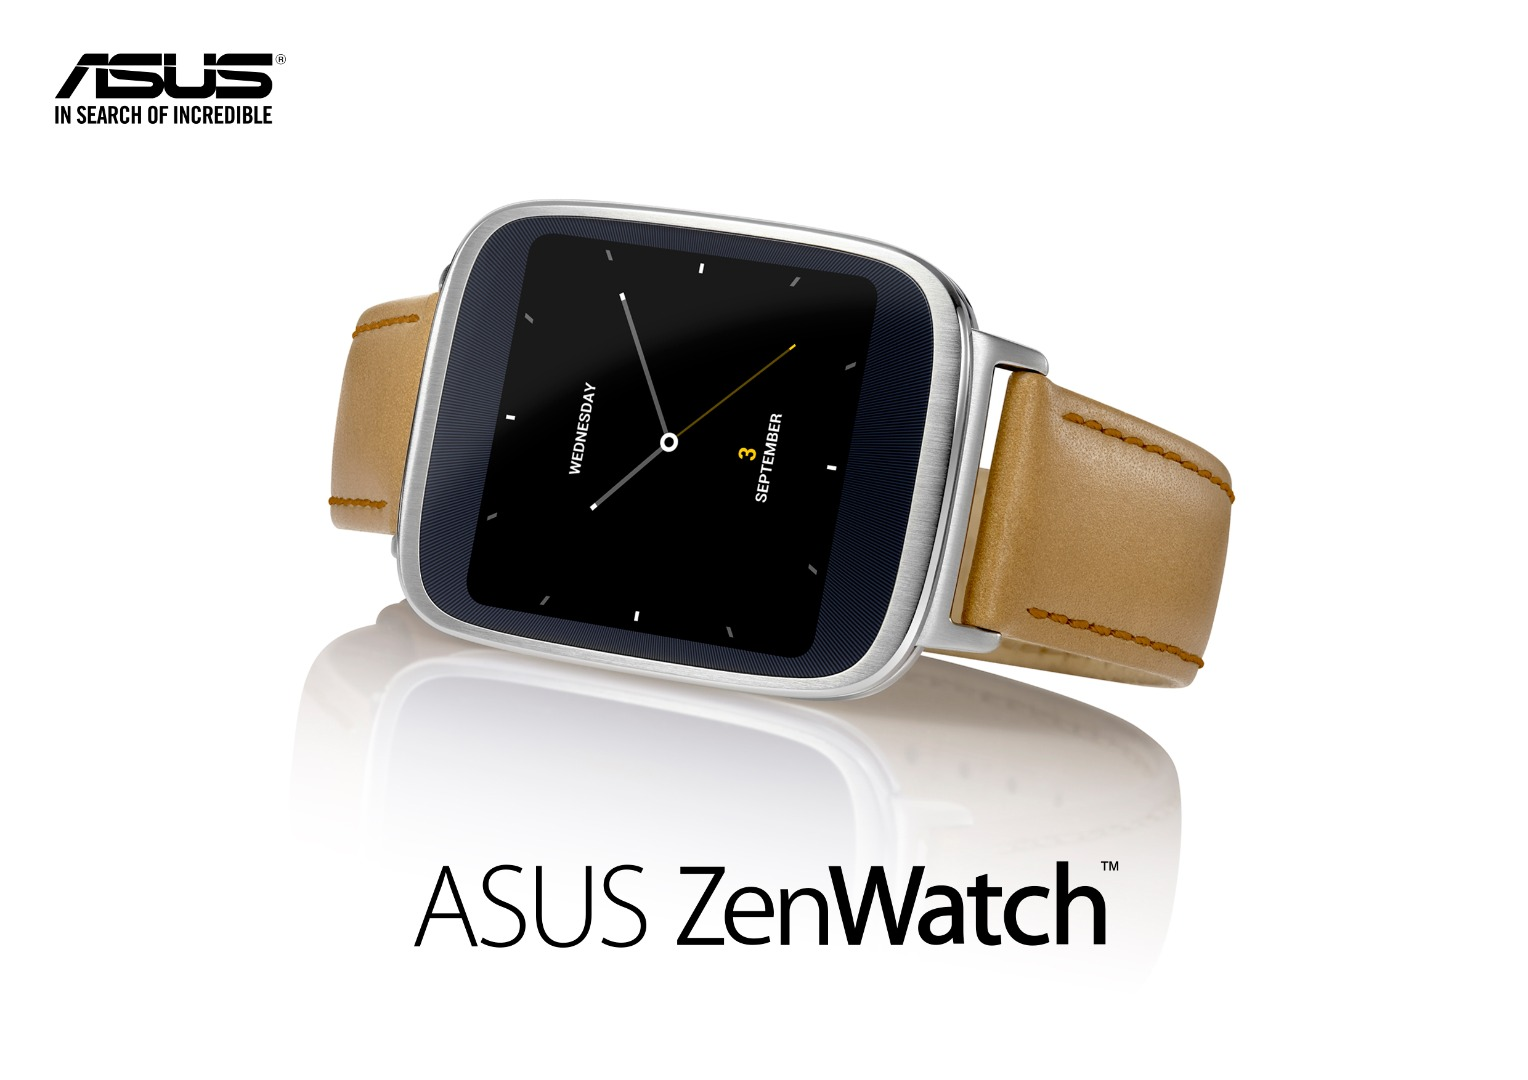 Asus Zenwatch Review: A Stylish, High-Performance and Inexpensive Smartwatch